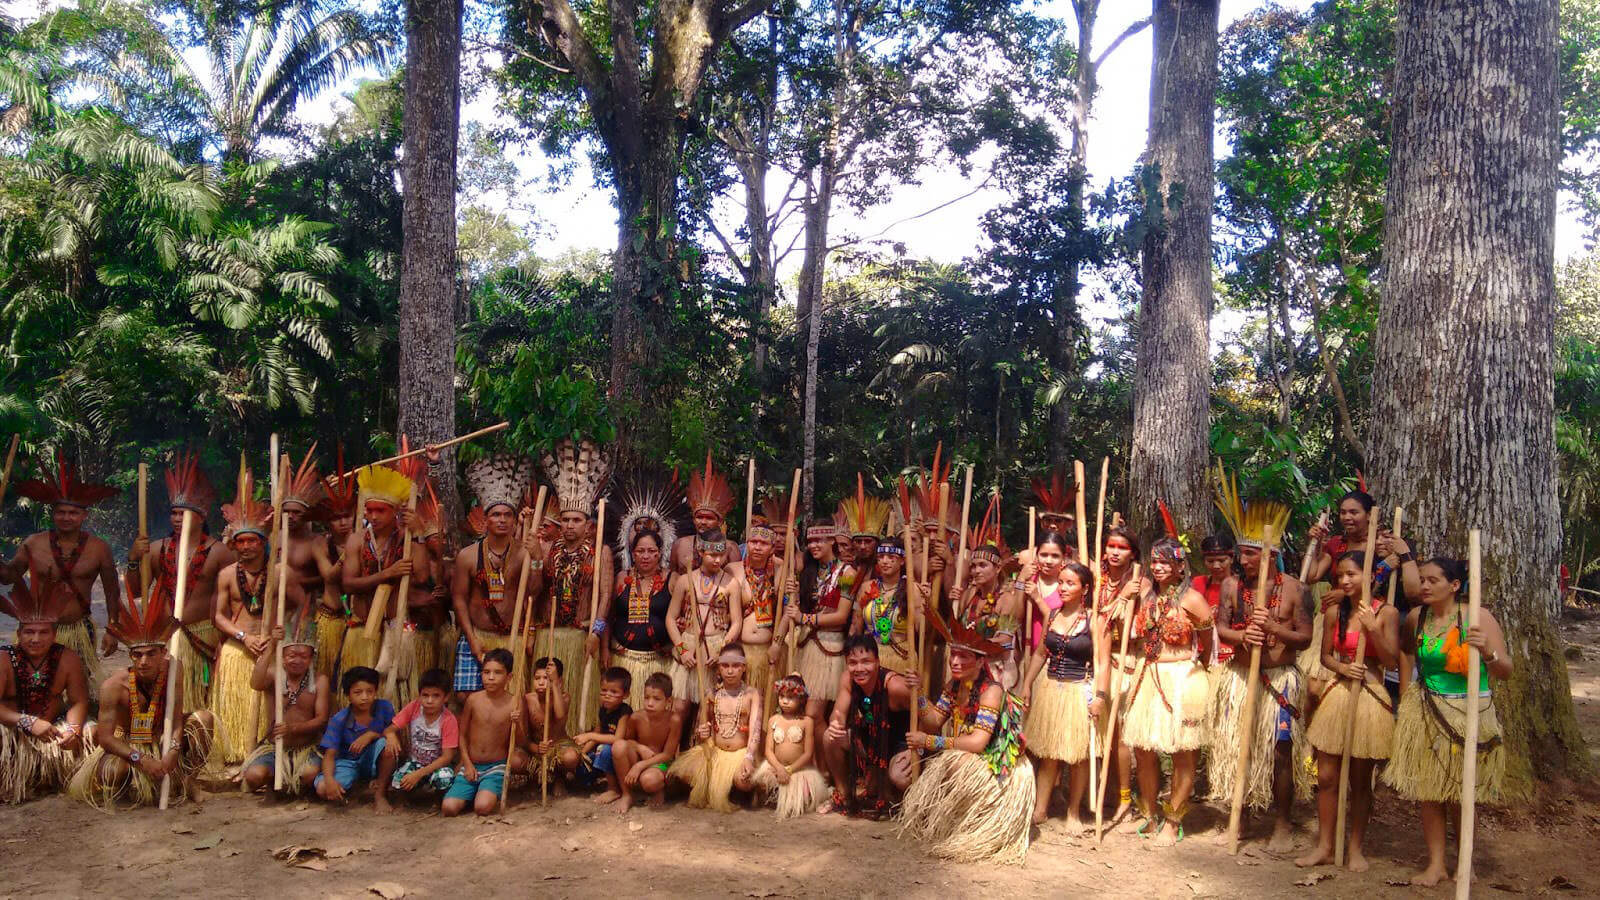 2 grand journeys to meet the indigenous peoples of the Amazon rainforest in June and July 2019